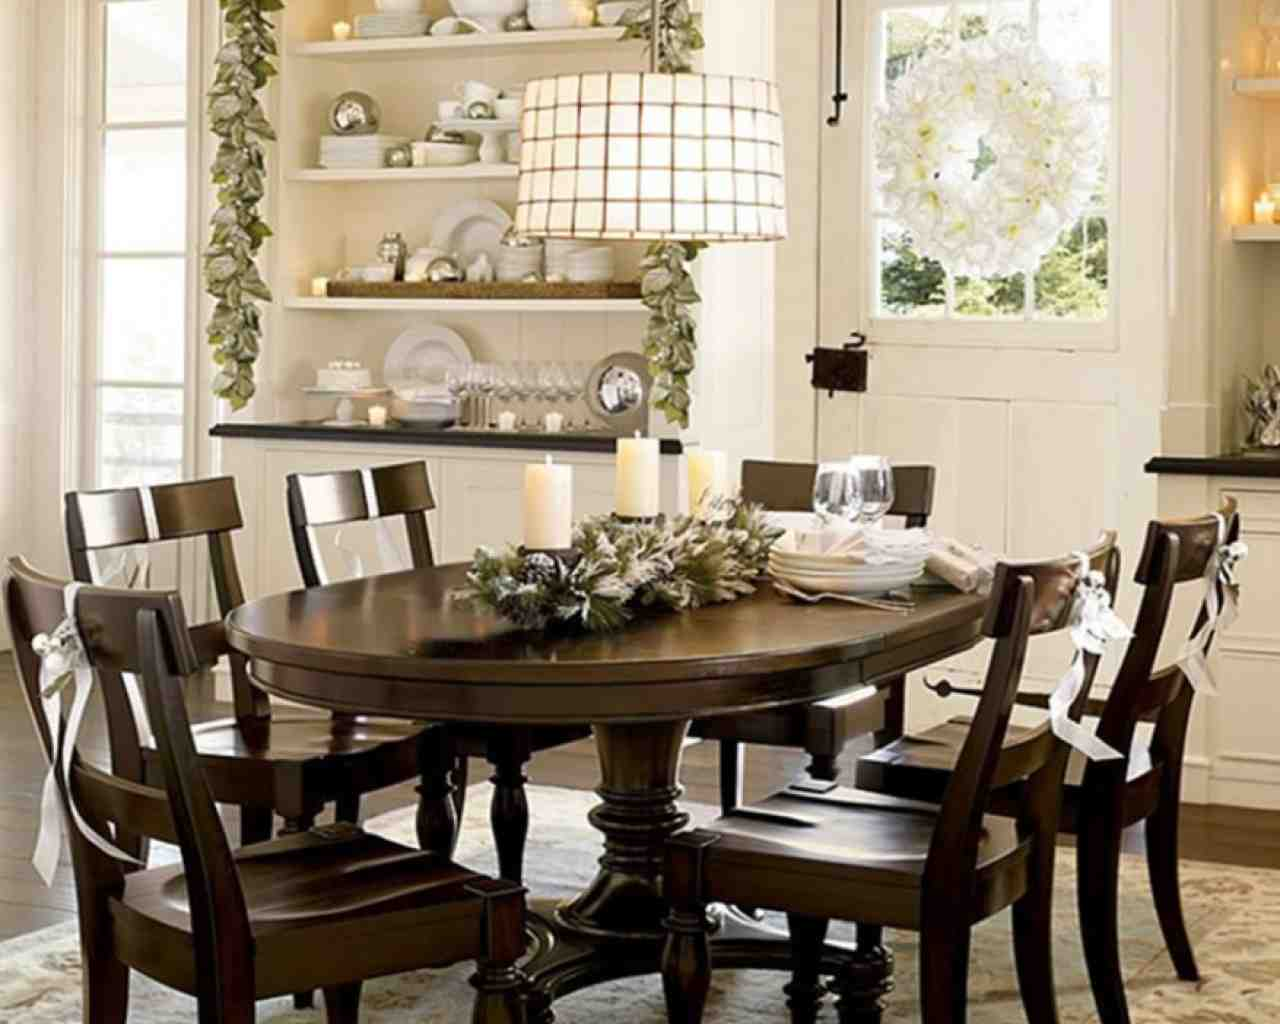 Decorating Ideas: Dining Room Decorating Ideas On A Budget